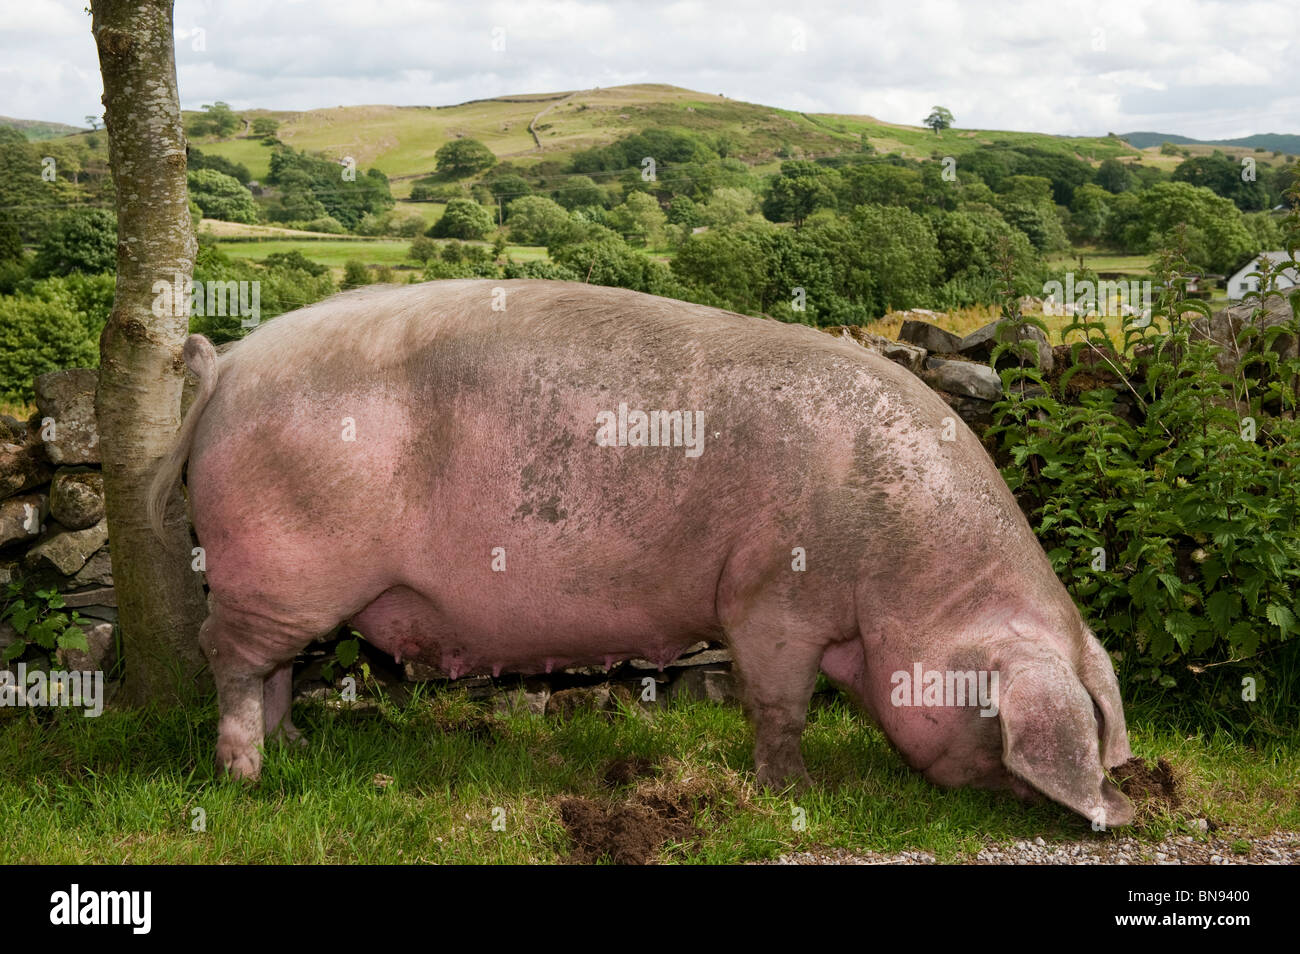 British Lop sow grazing among grass against a stonewall. - Stock Image